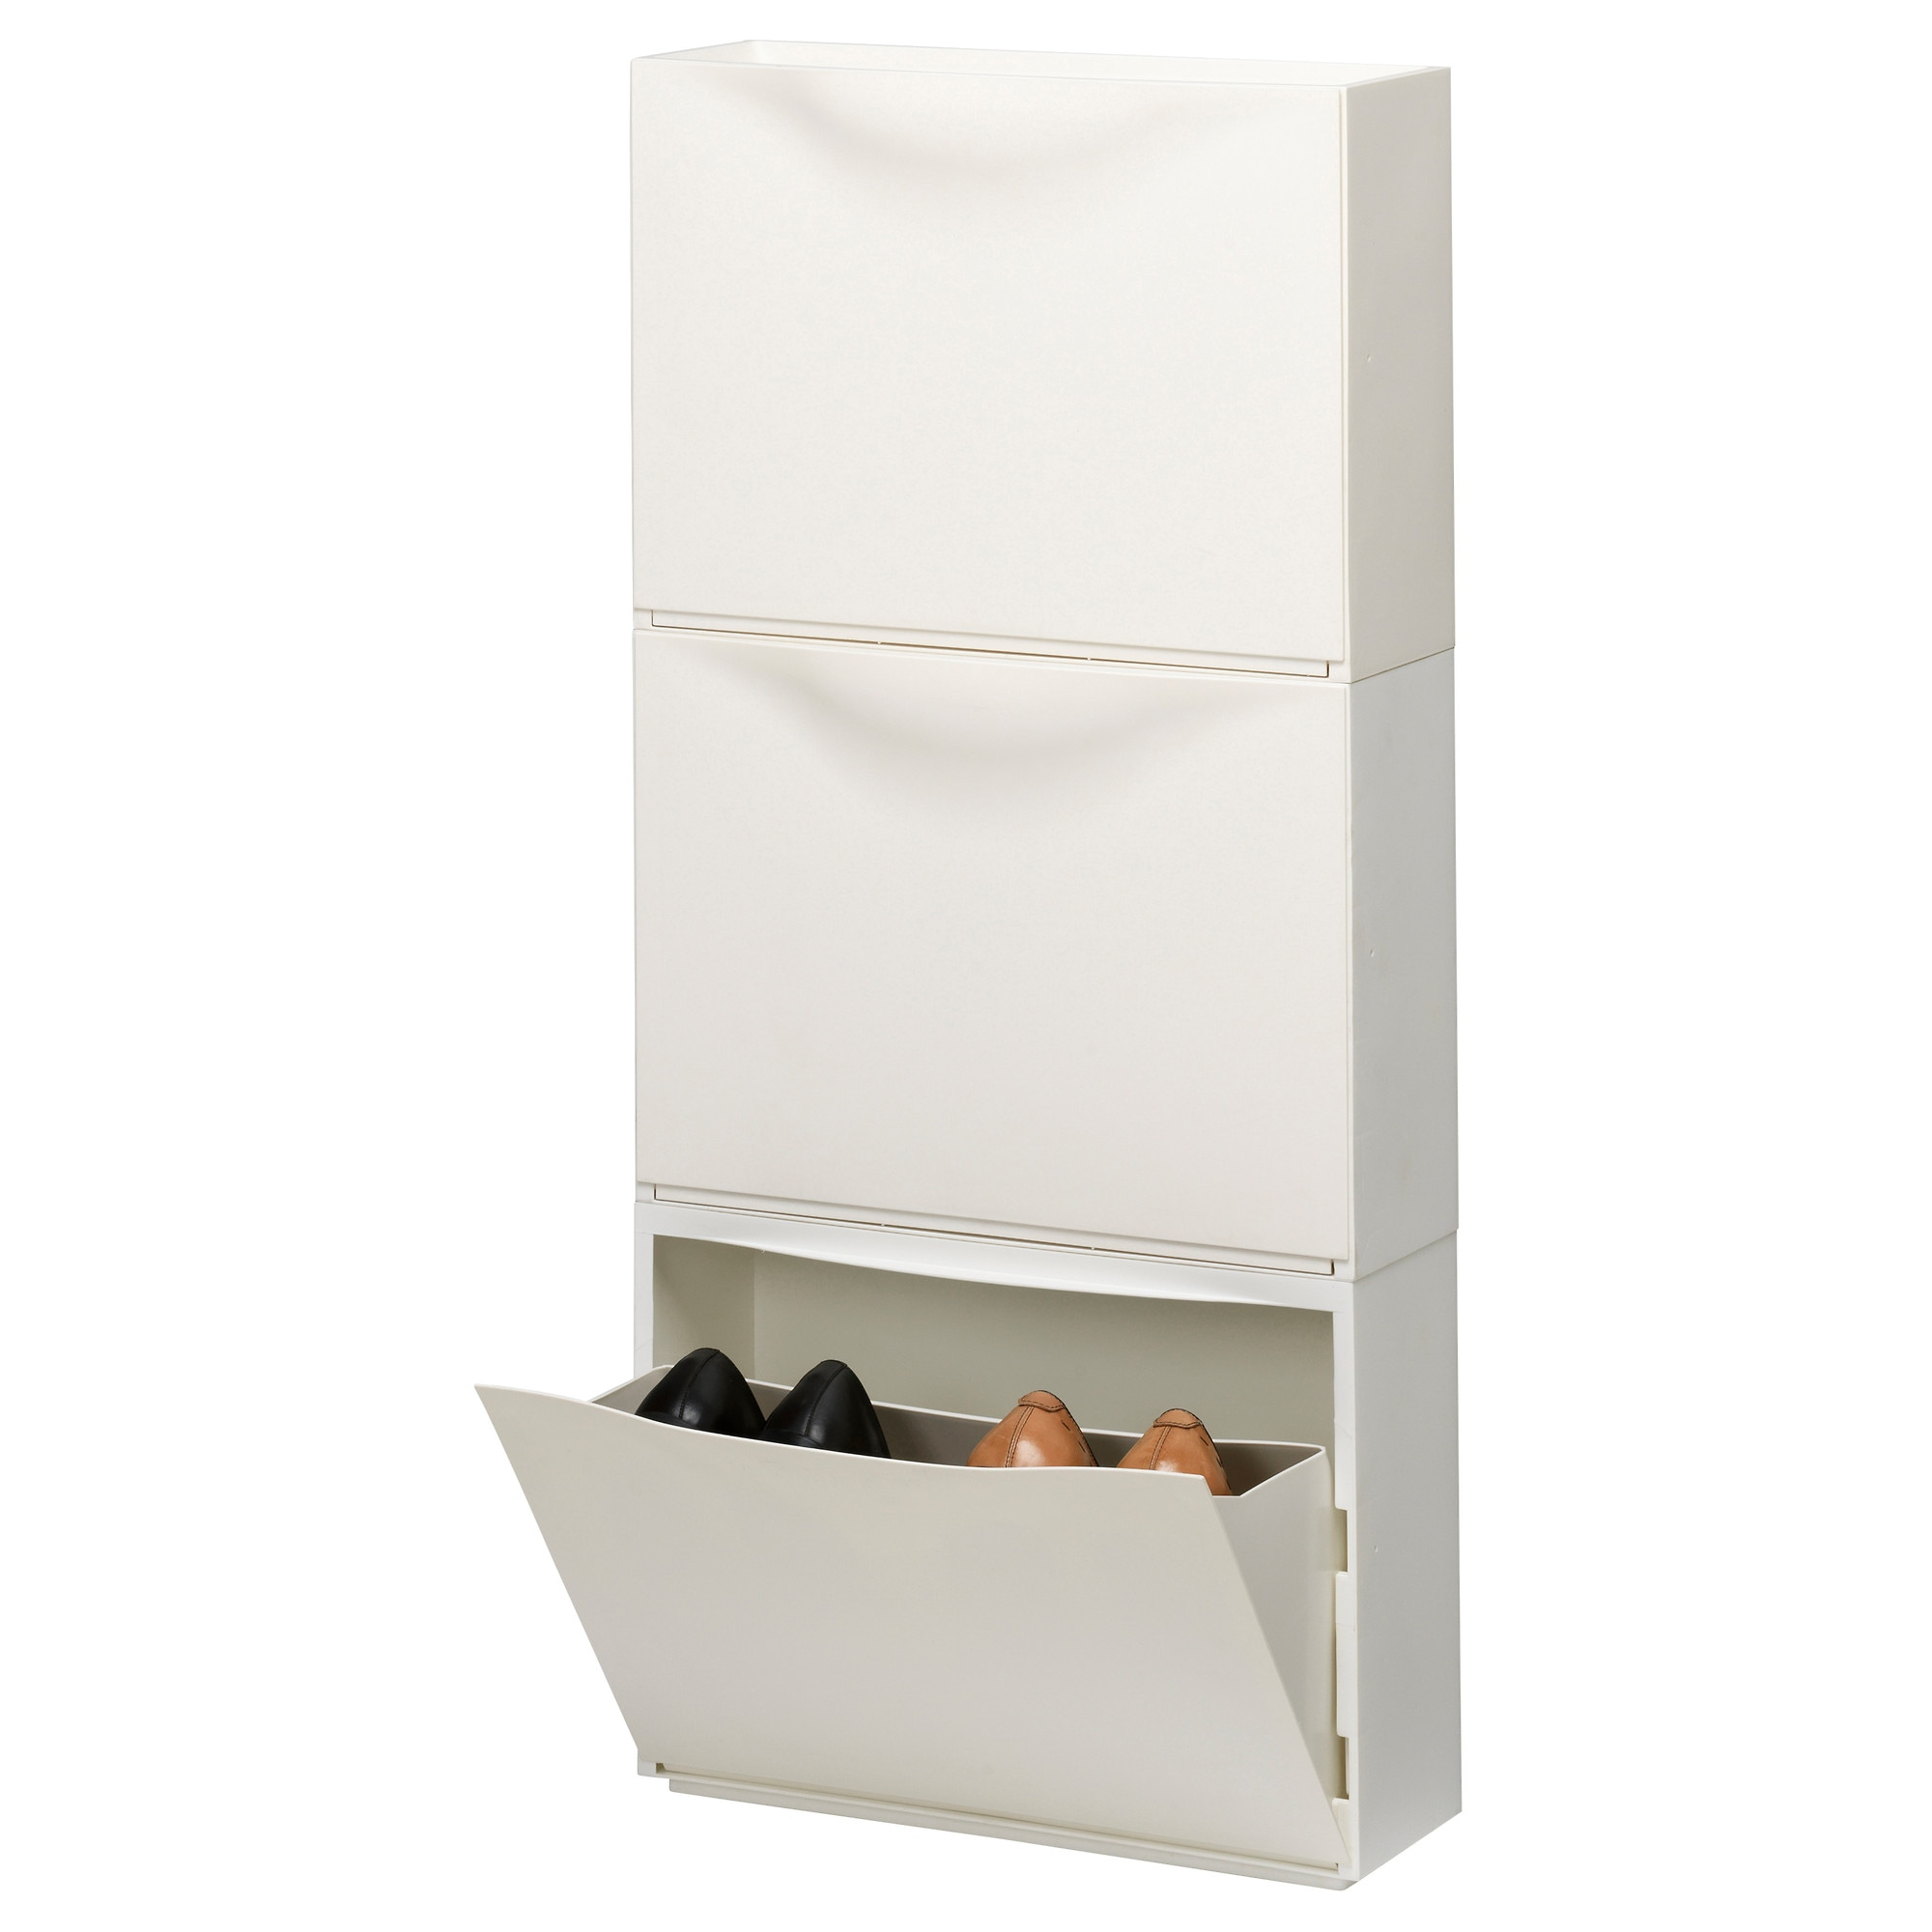 Design Ikea Shoe Storage trones shoestorage cabinet white ikea